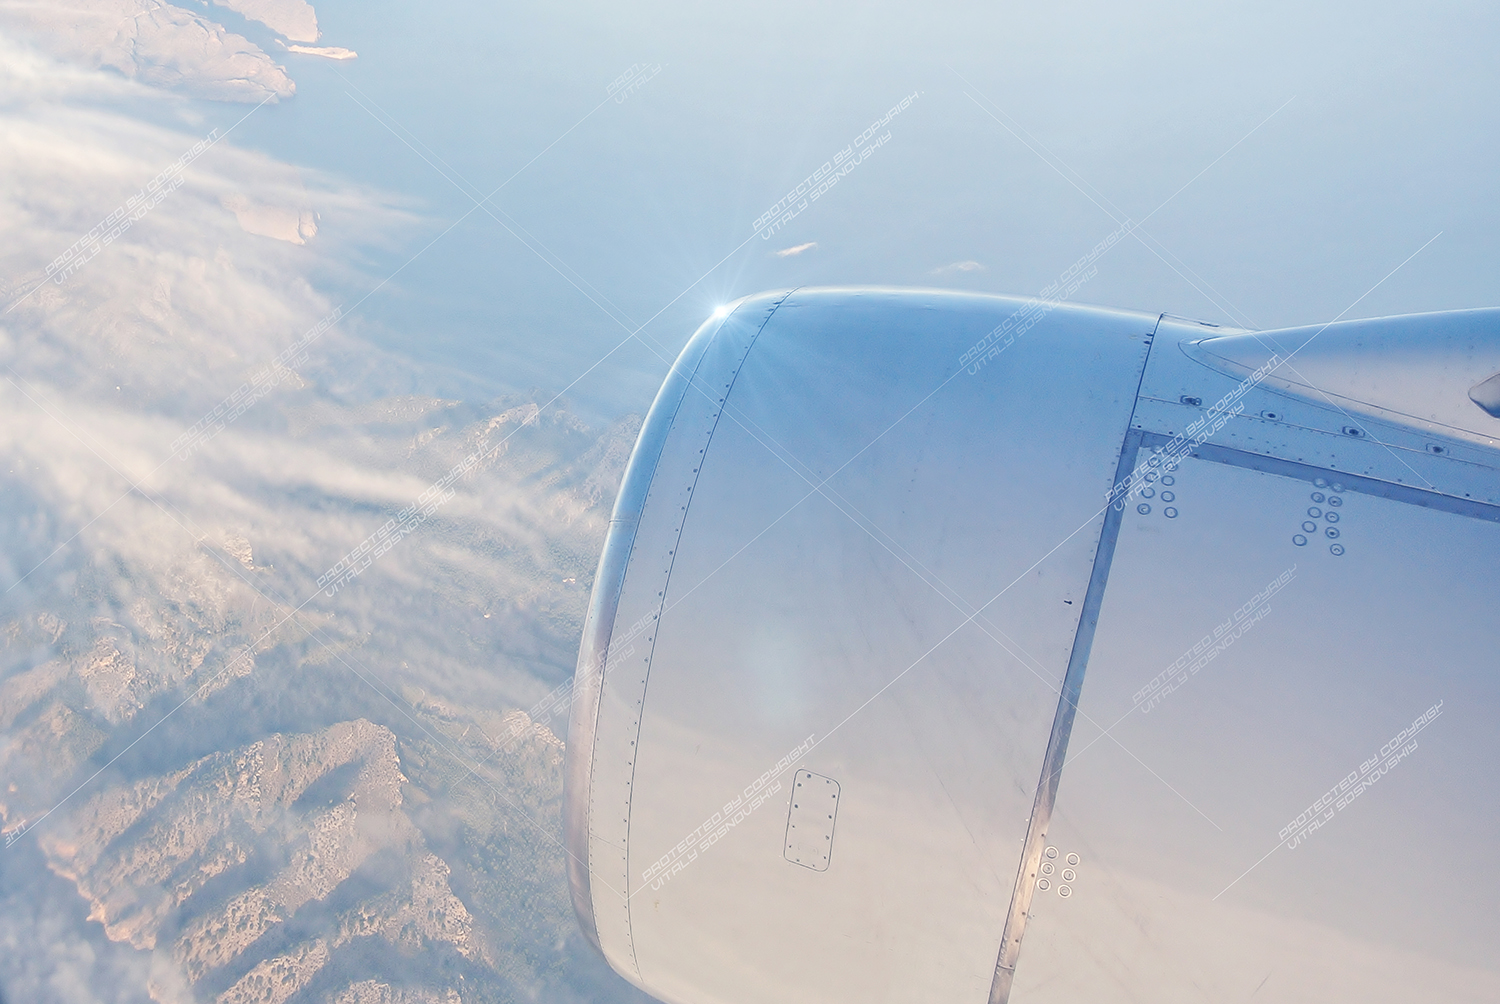 20 Photos clouds and wings of airplanes example image 4